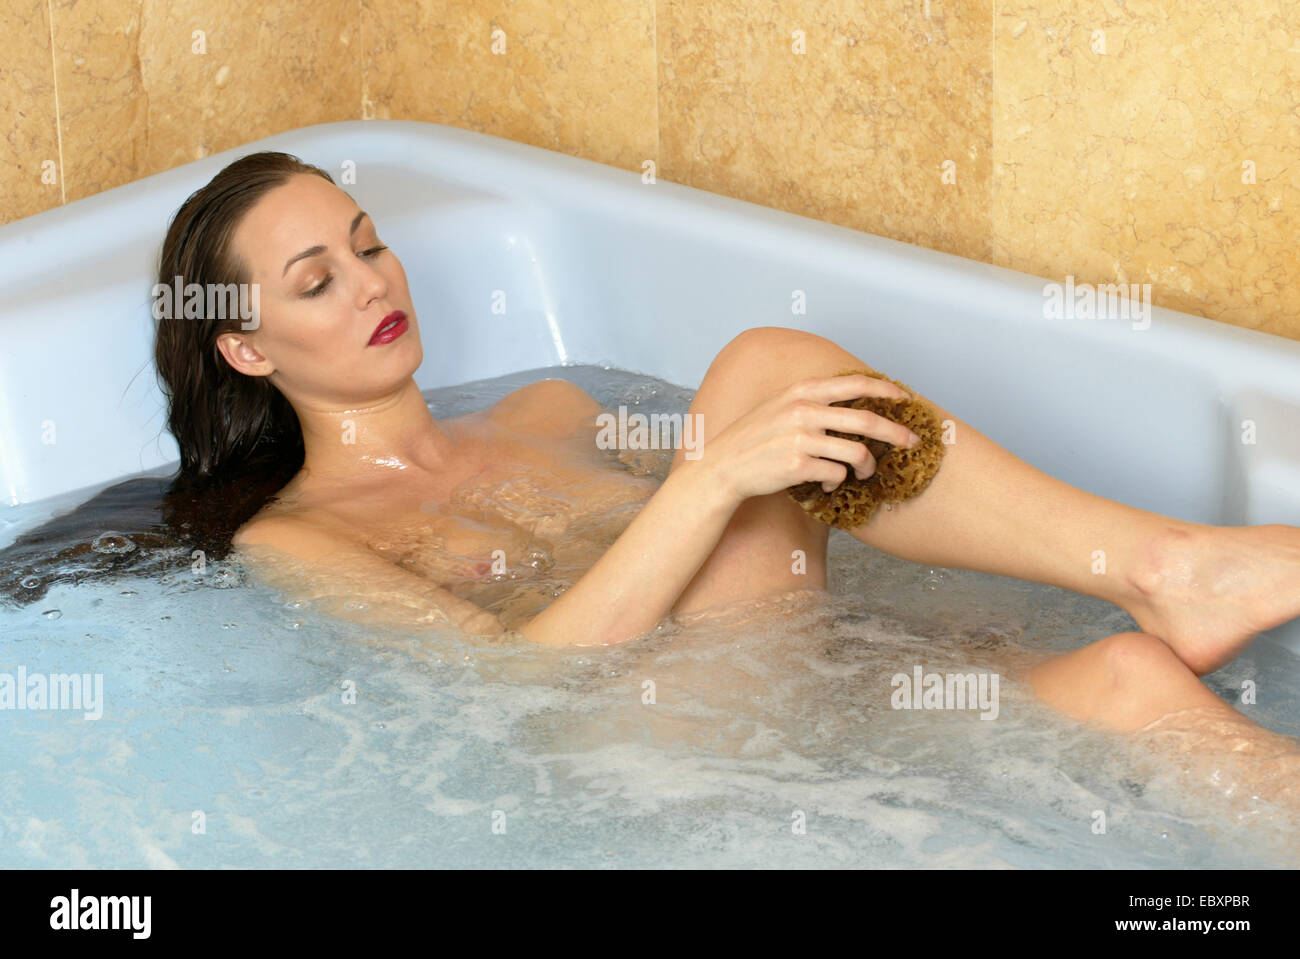 sexy naked women in the bathtub